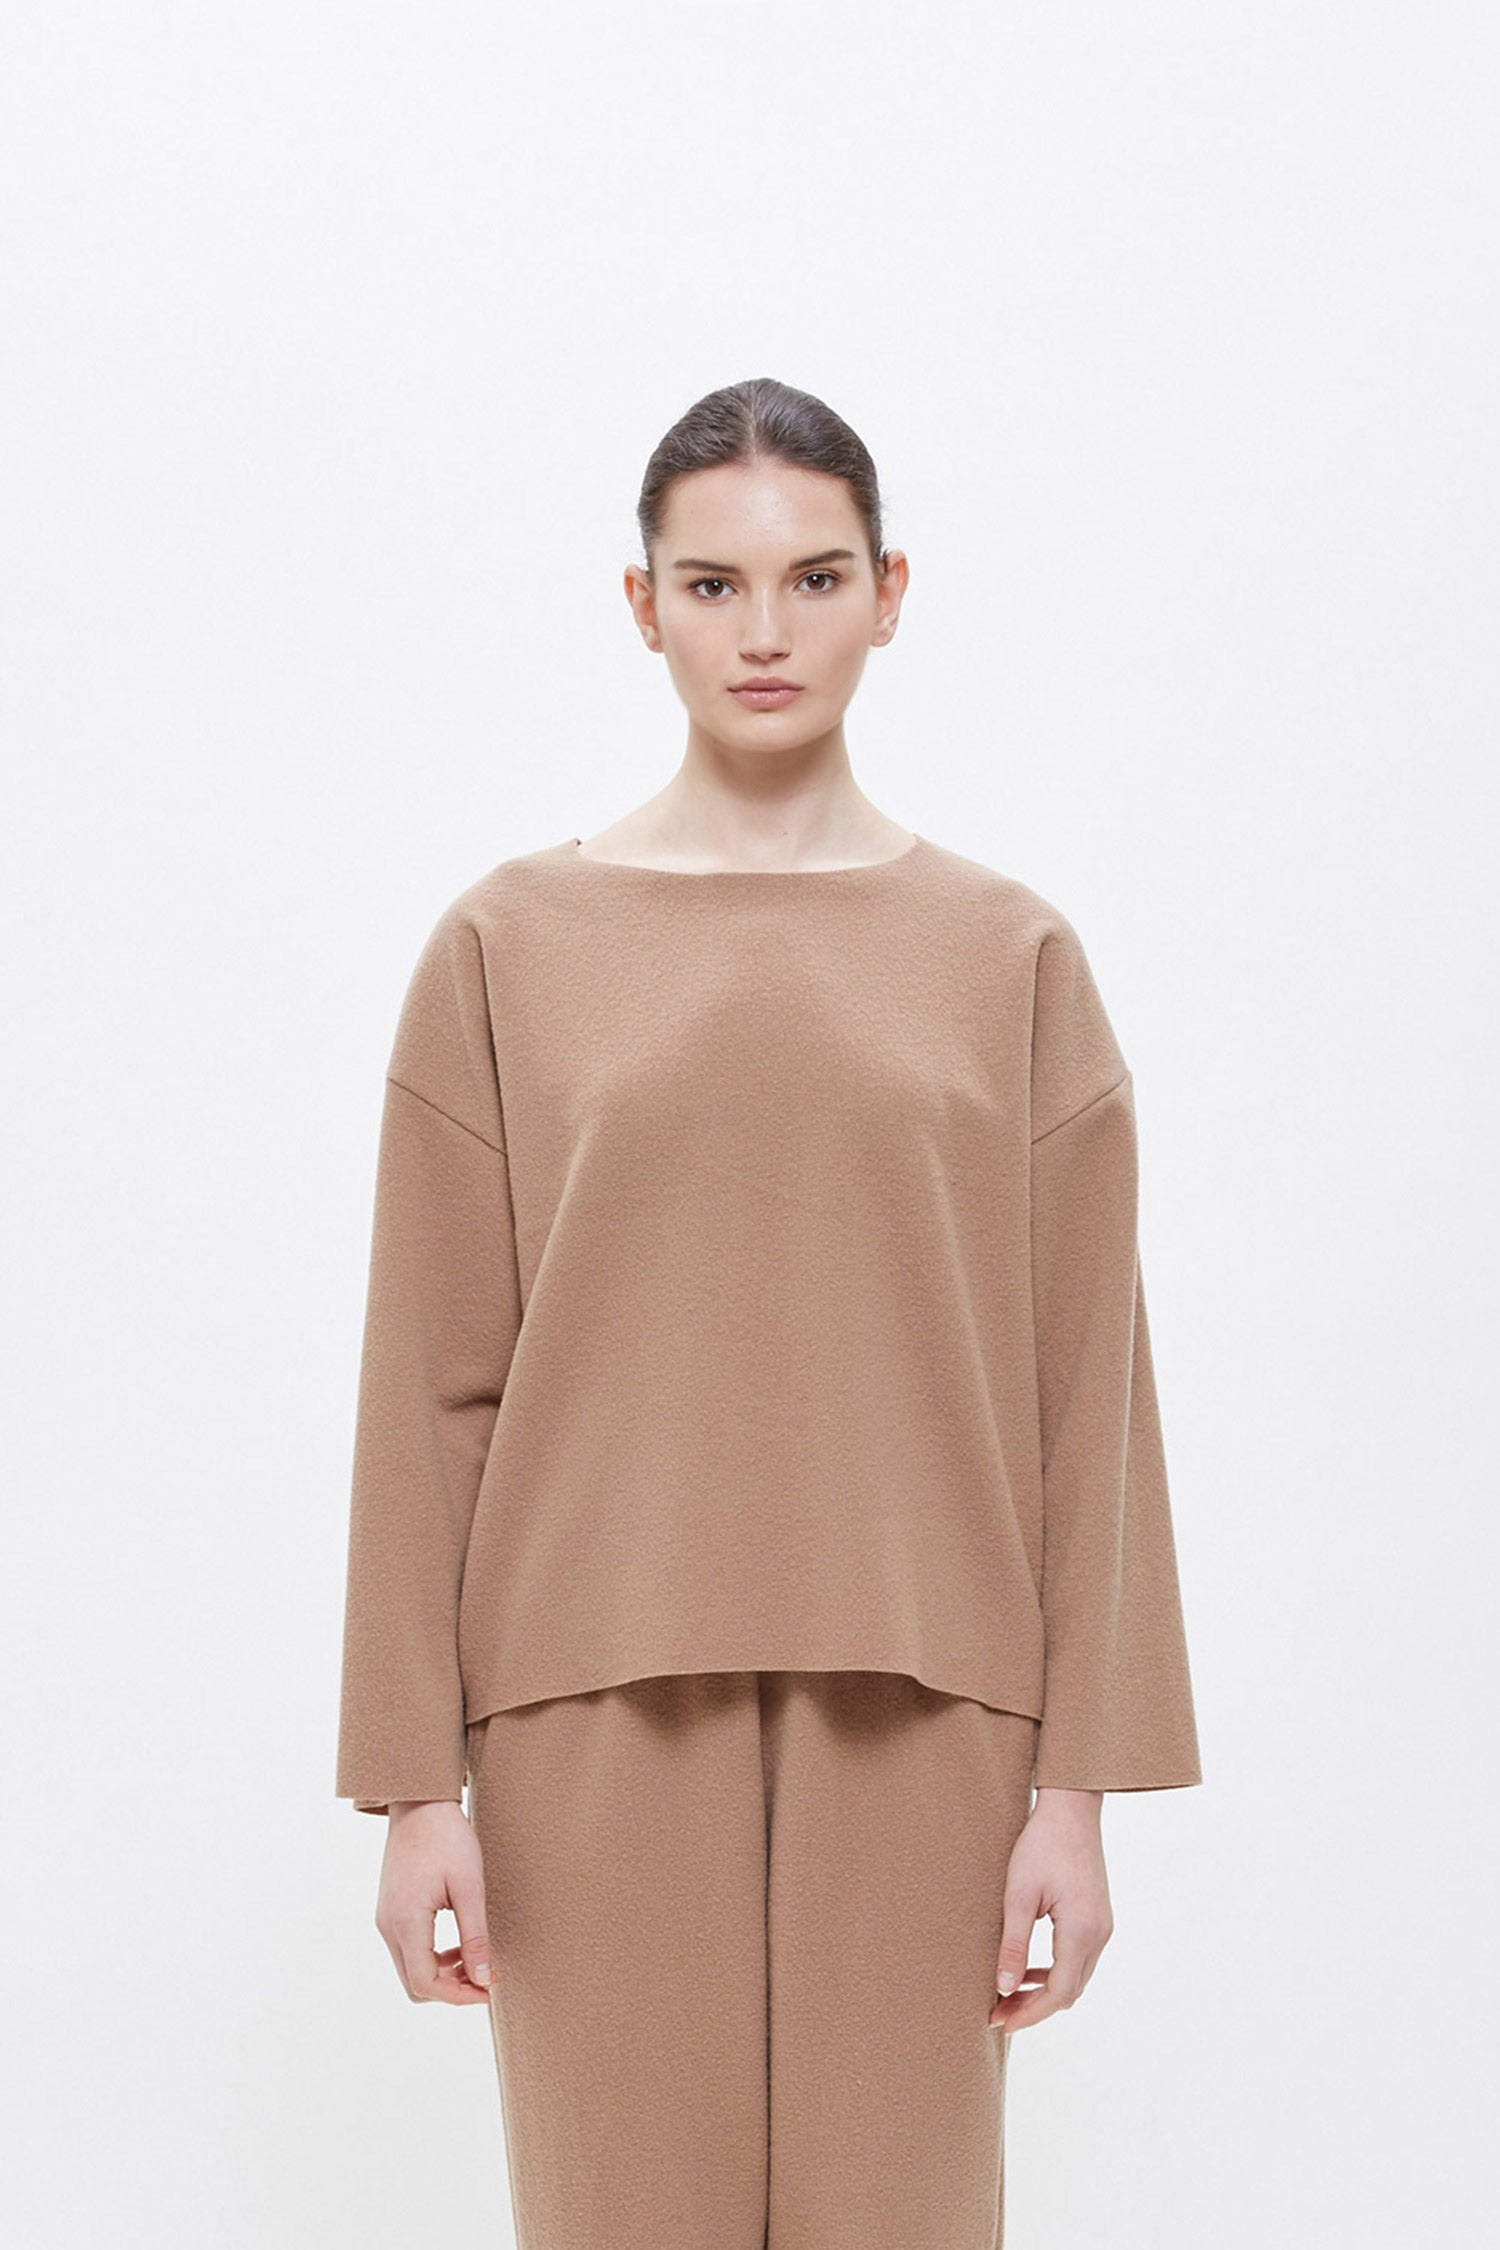 PULLOVER / WN-PO10 (WOOL NYLON) / CAMEL